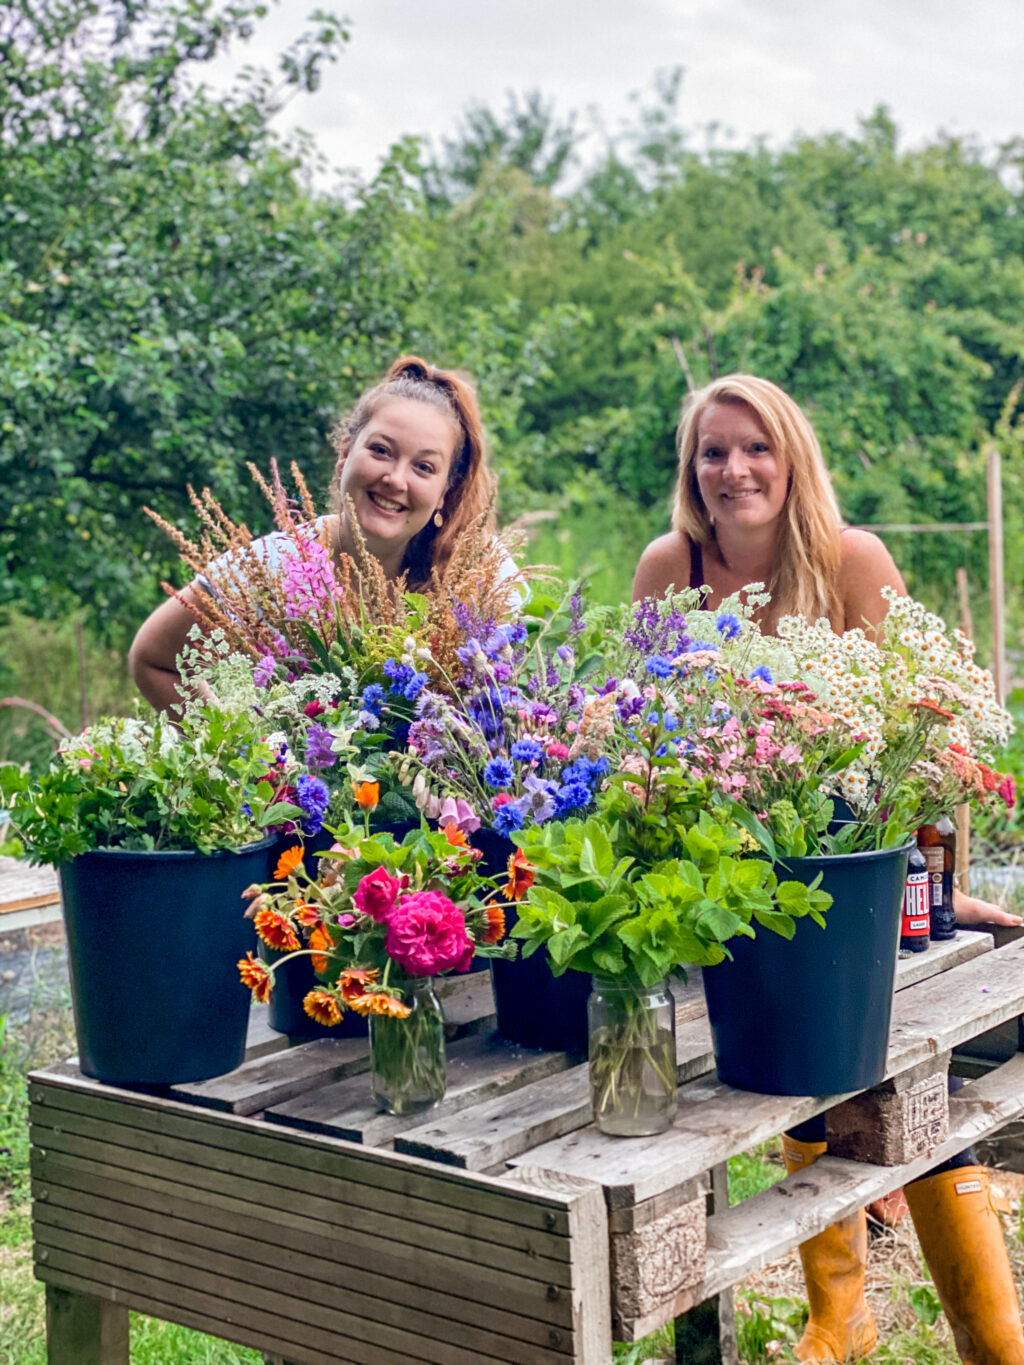 The Elworthy Flowers team survey their outdoor table filled with buckets of zesty green mint, cornflowers, tancetum daisies, orange pot marigolds and pale pink foxgloves - the best of the late spring cutting patch.